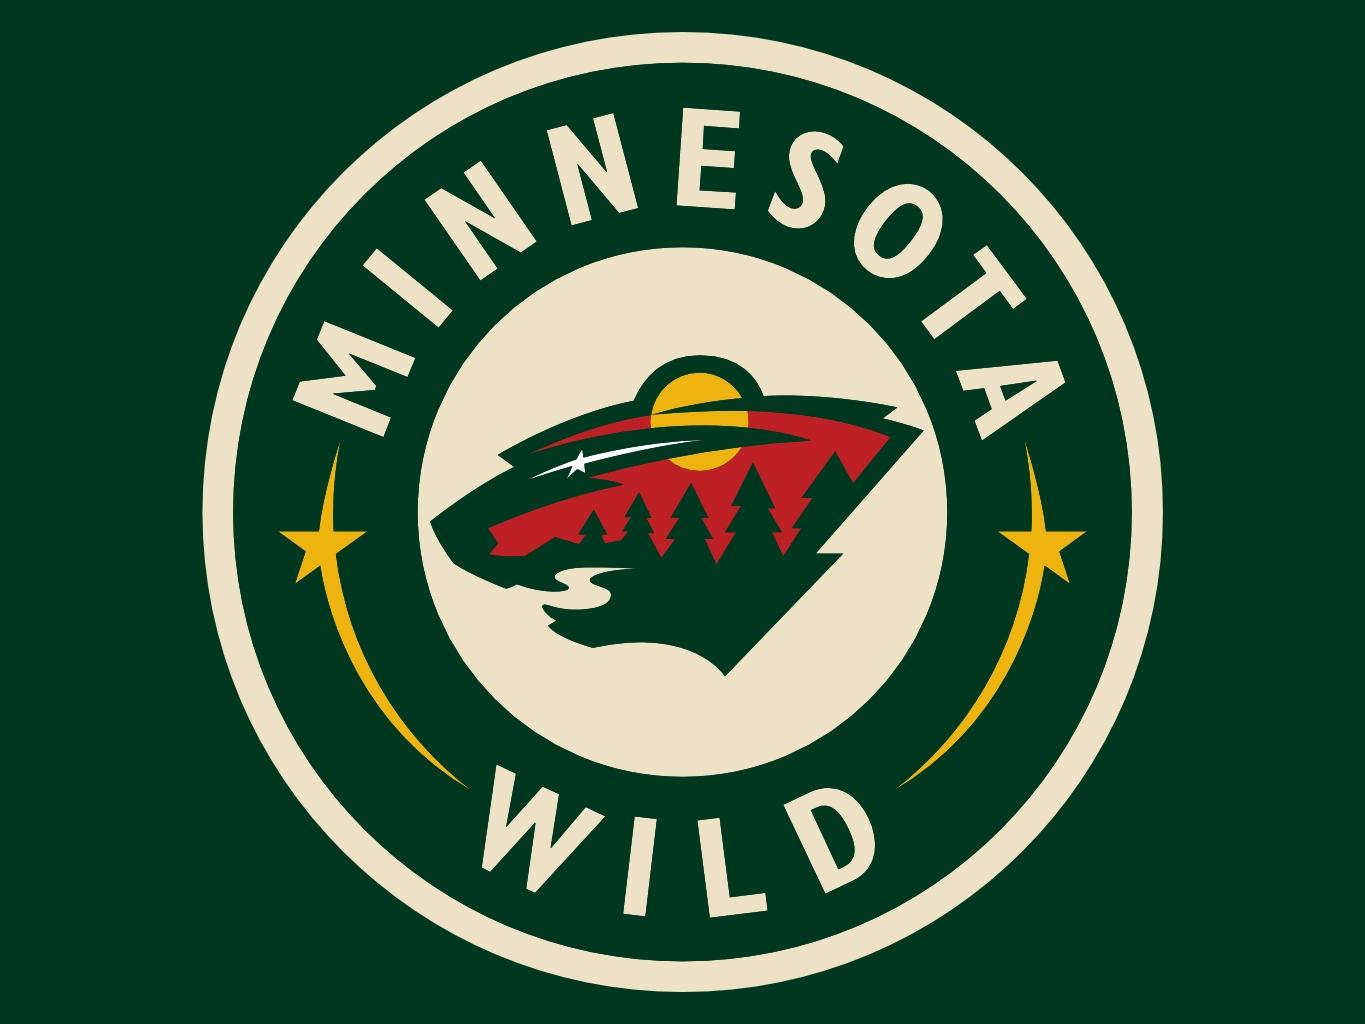 Why our minnesota hockey teams are the ones to watch this season minnetonka breezes - Minnesota wild logo ...